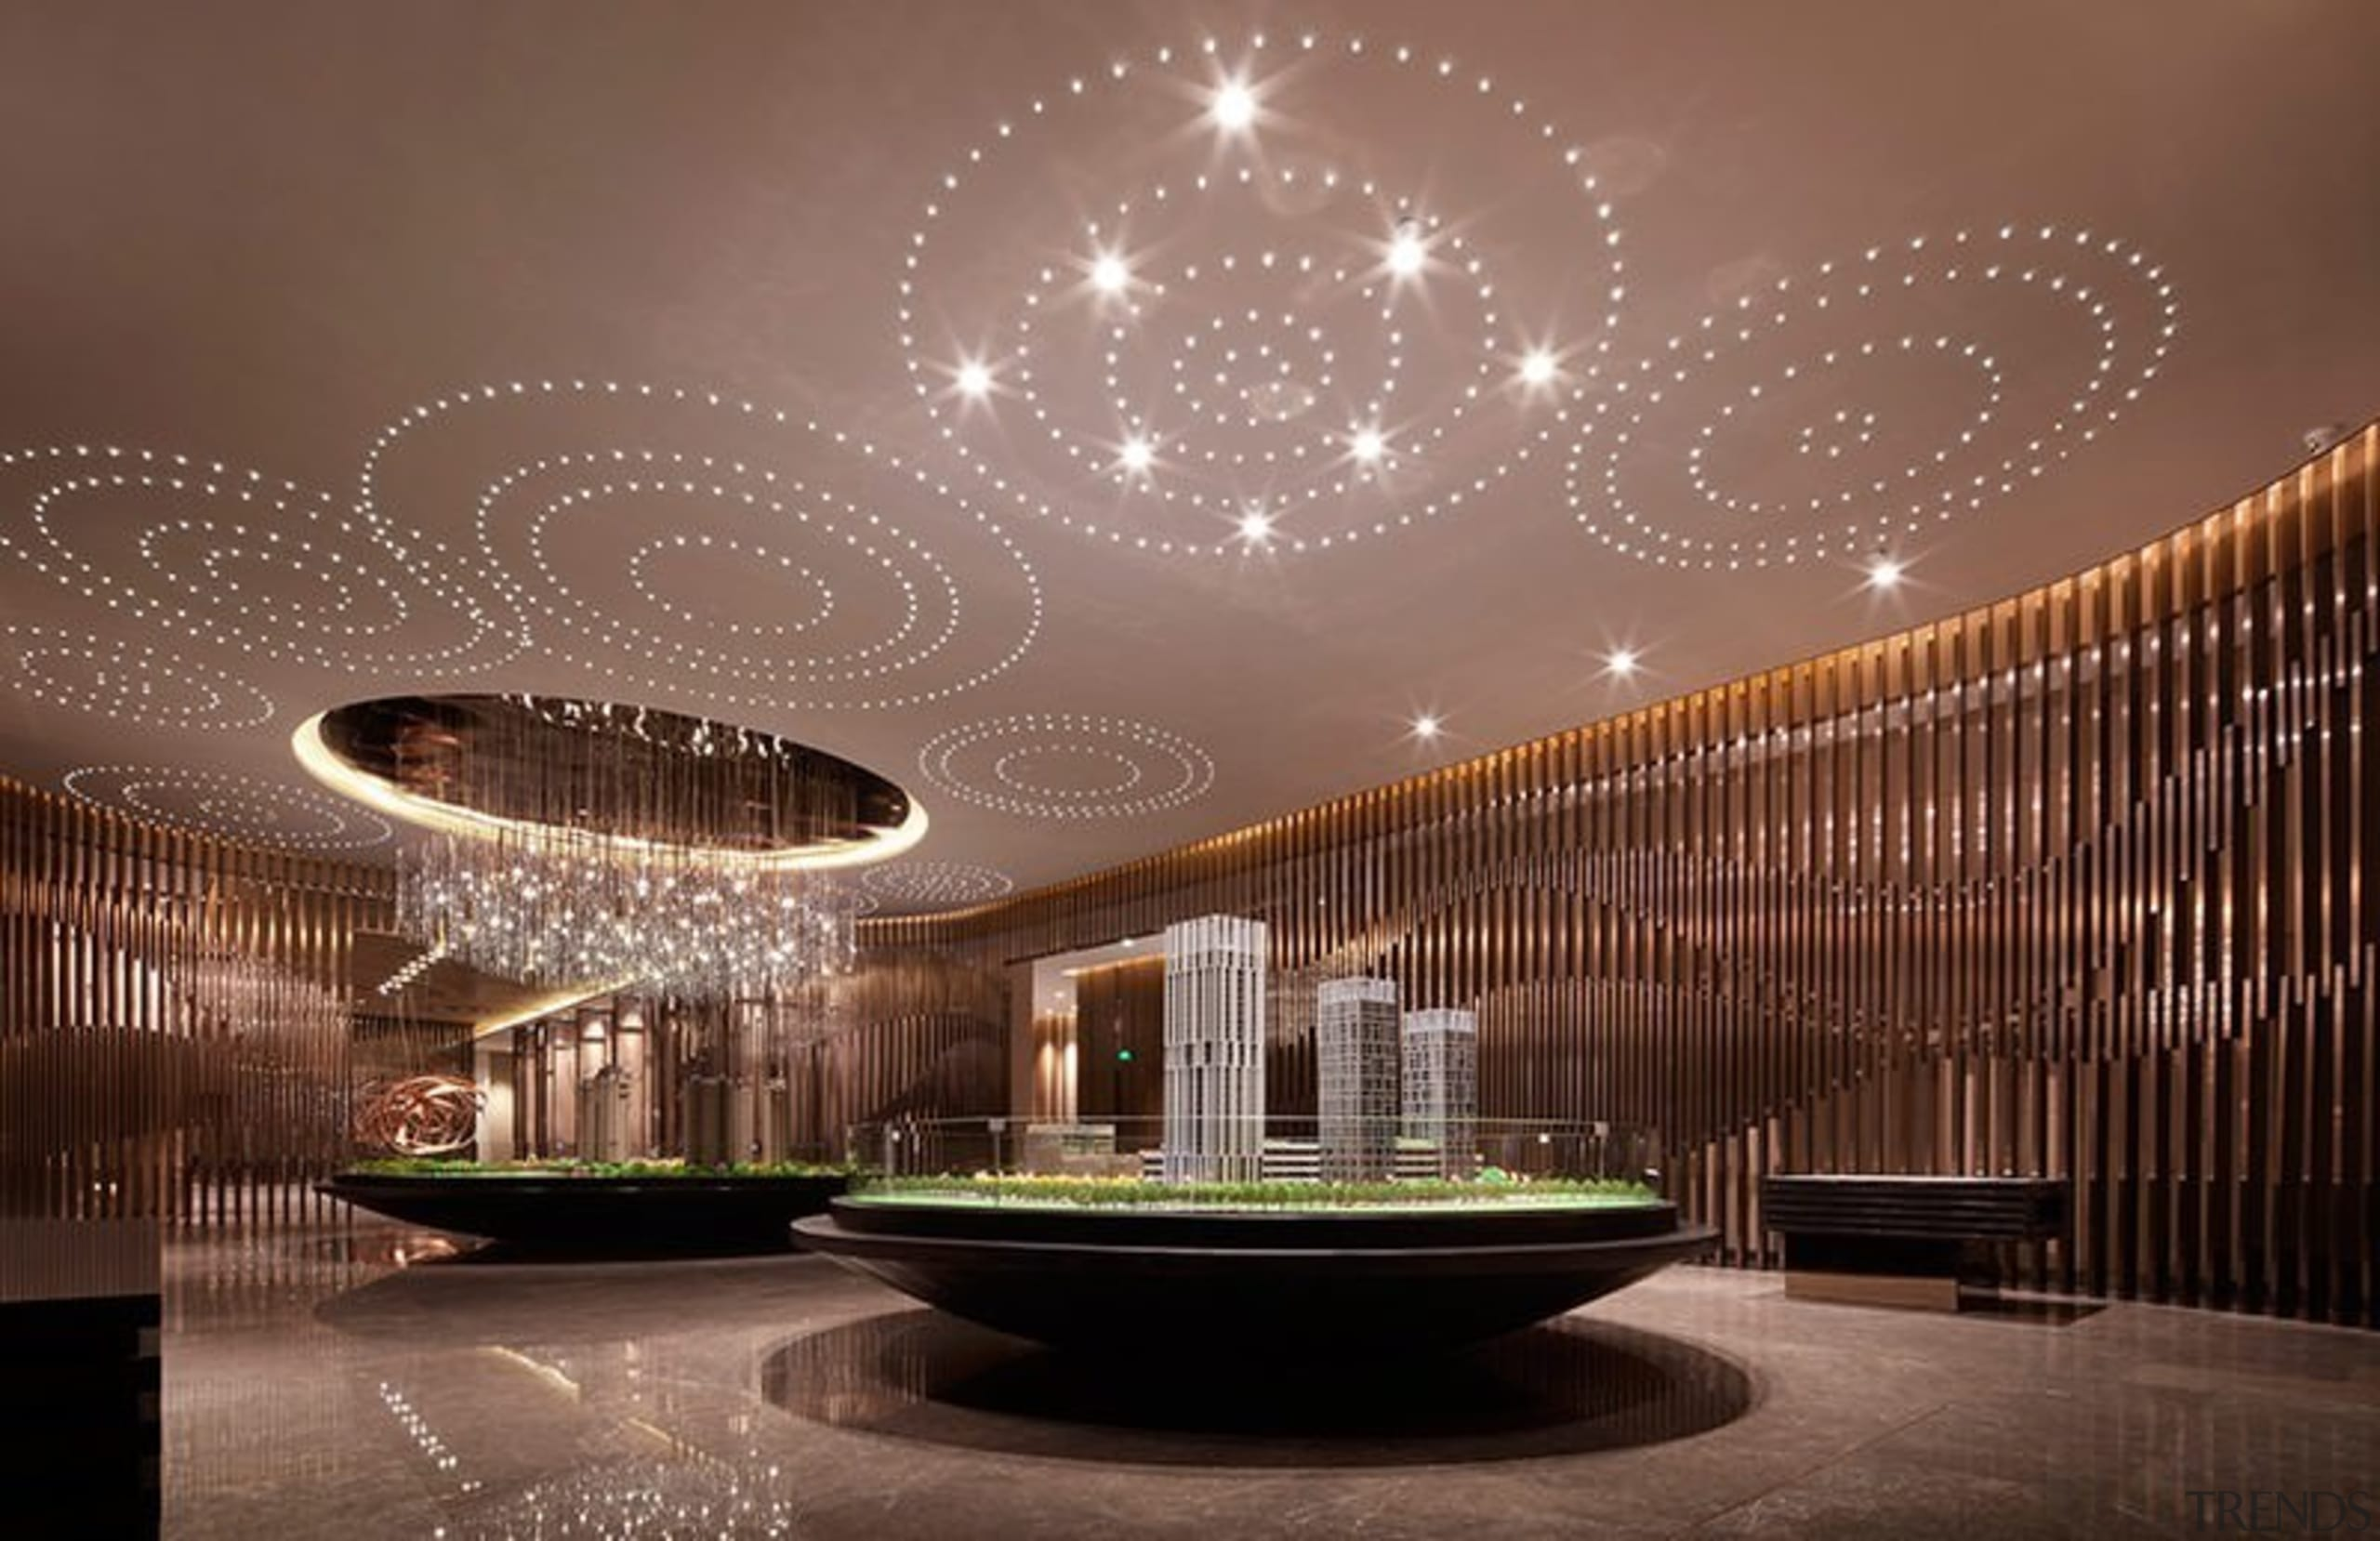 The light patterns in the ceiling resemble water architecture, ceiling, interior design, light fixture, lighting, lobby, brown